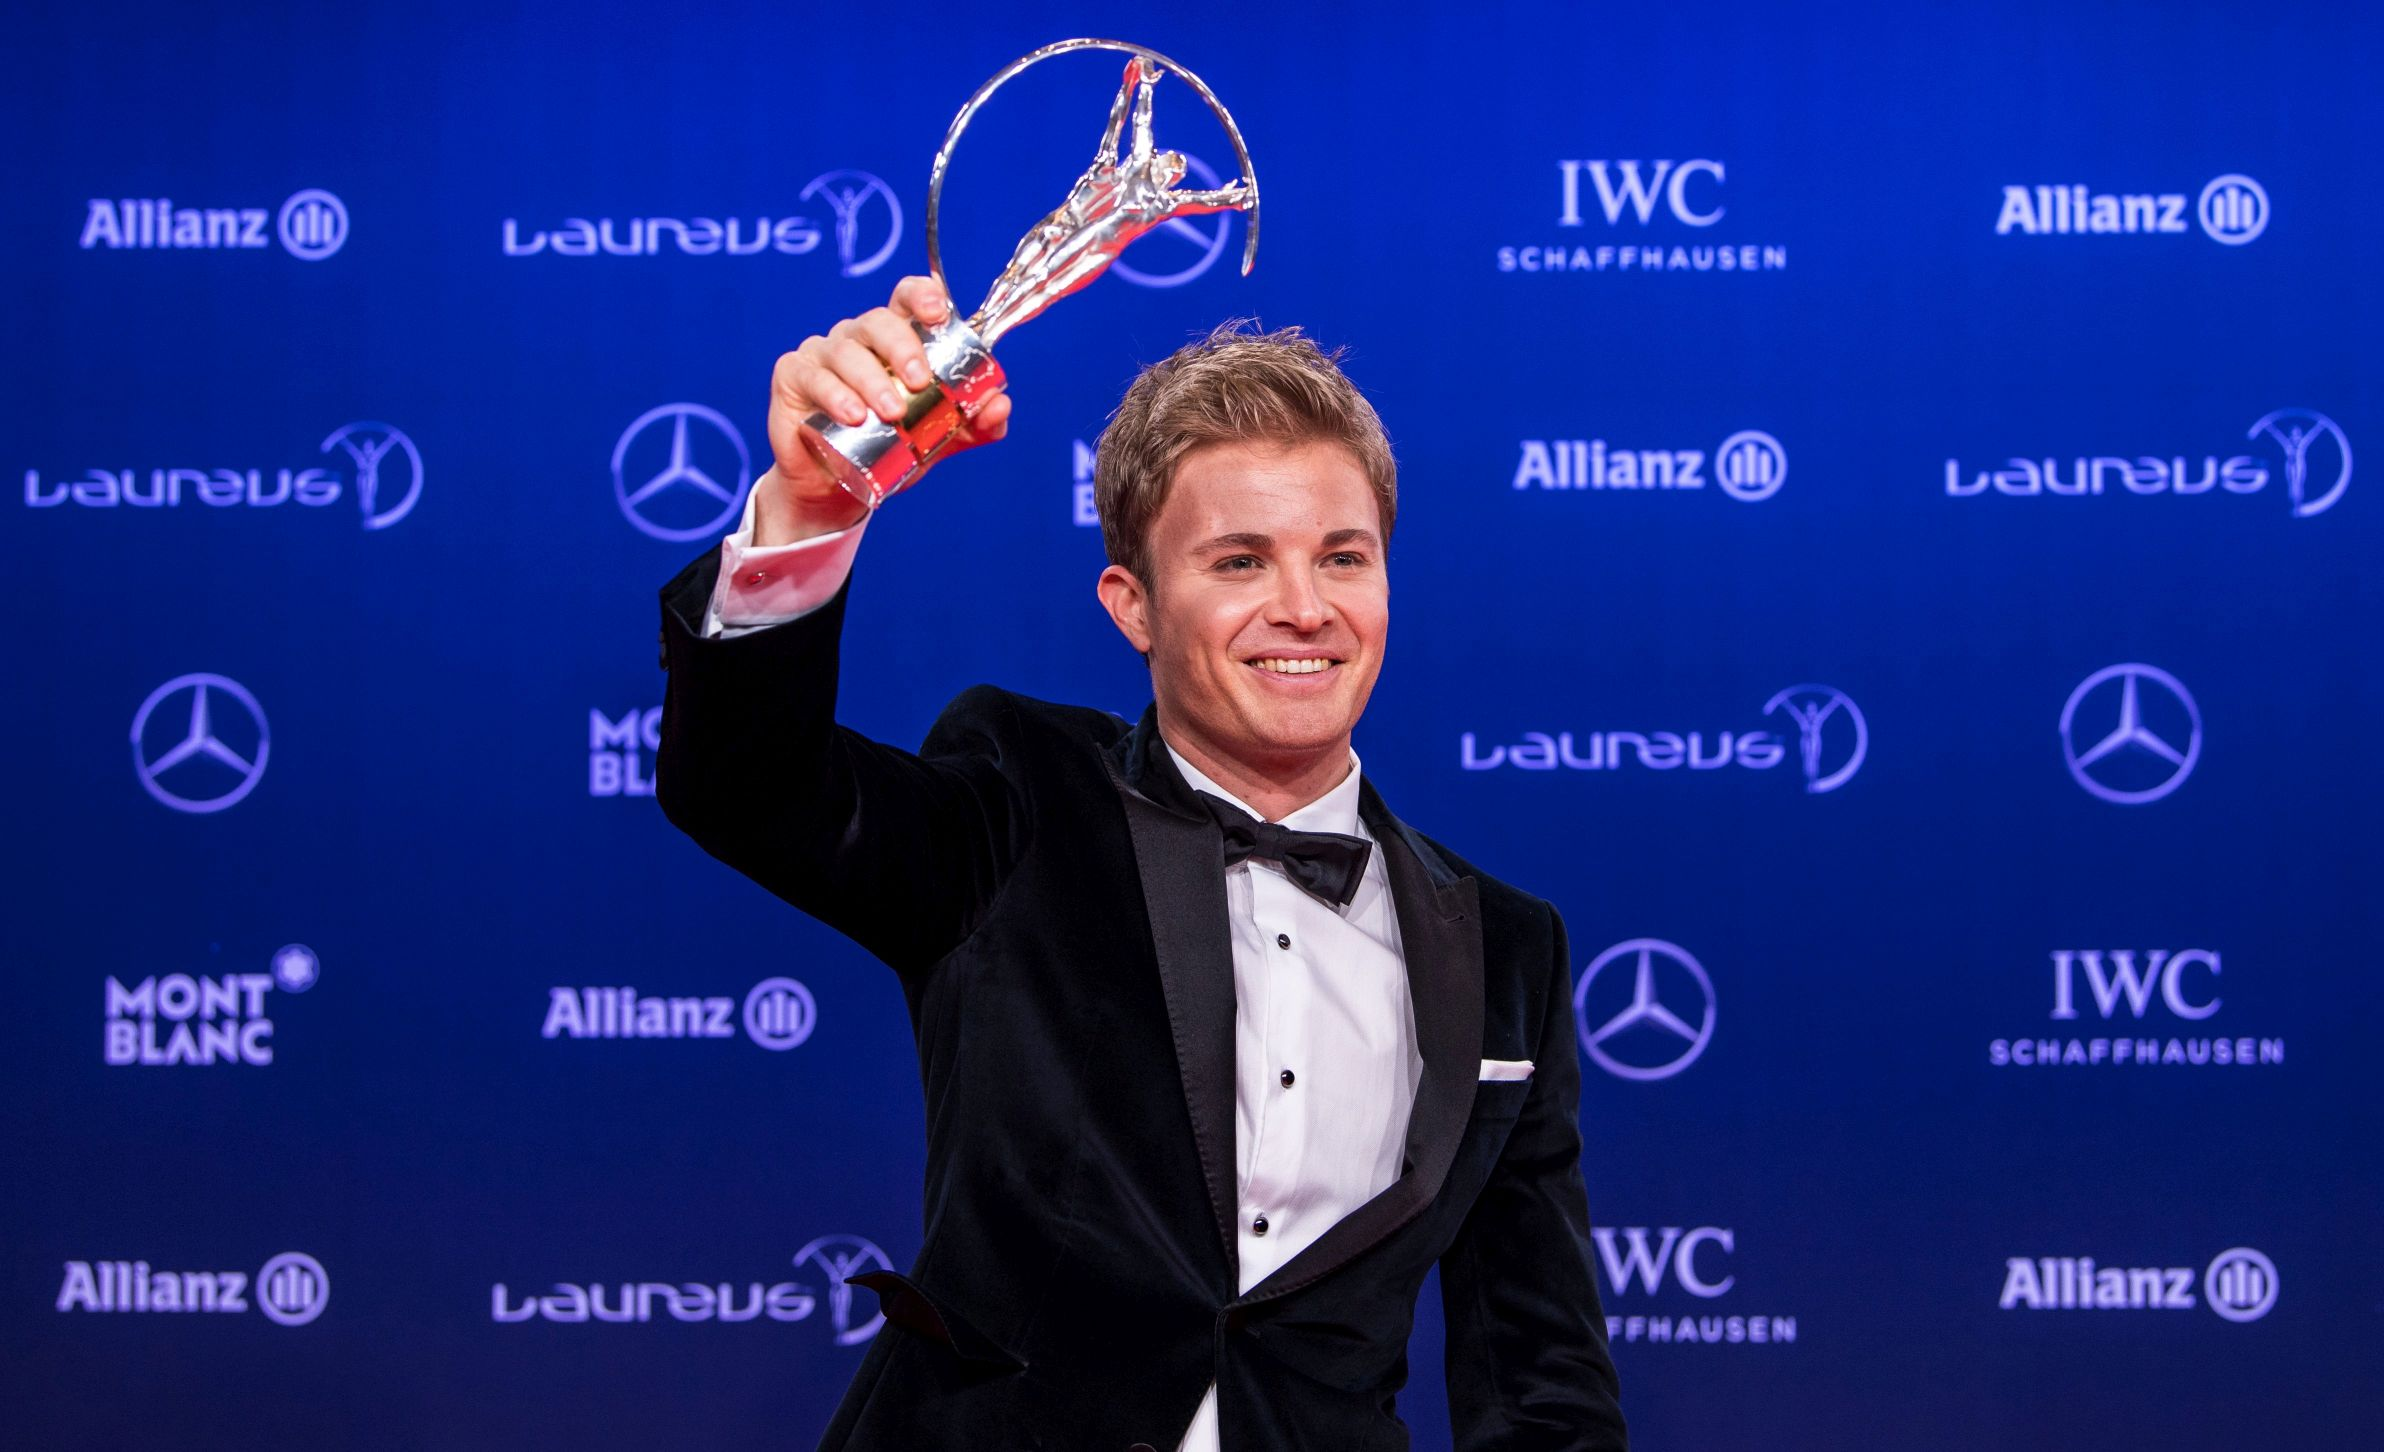 MONTE CARLO, MONACO - FEBRUARY 14: Nico Rosberg, Formular One World Champion, attends the 2017 Laureus World Sports Awards at the Salle des Etoiles, Sporting Monte Carlo on February 14, 2017 in Monaco, Monaco. The most outstanding athletes of the past year were honoured at the Laureus World Sports Awards 2017. (Photo by Lukas Schulze/IWC Schaffhausen via Getty Images )